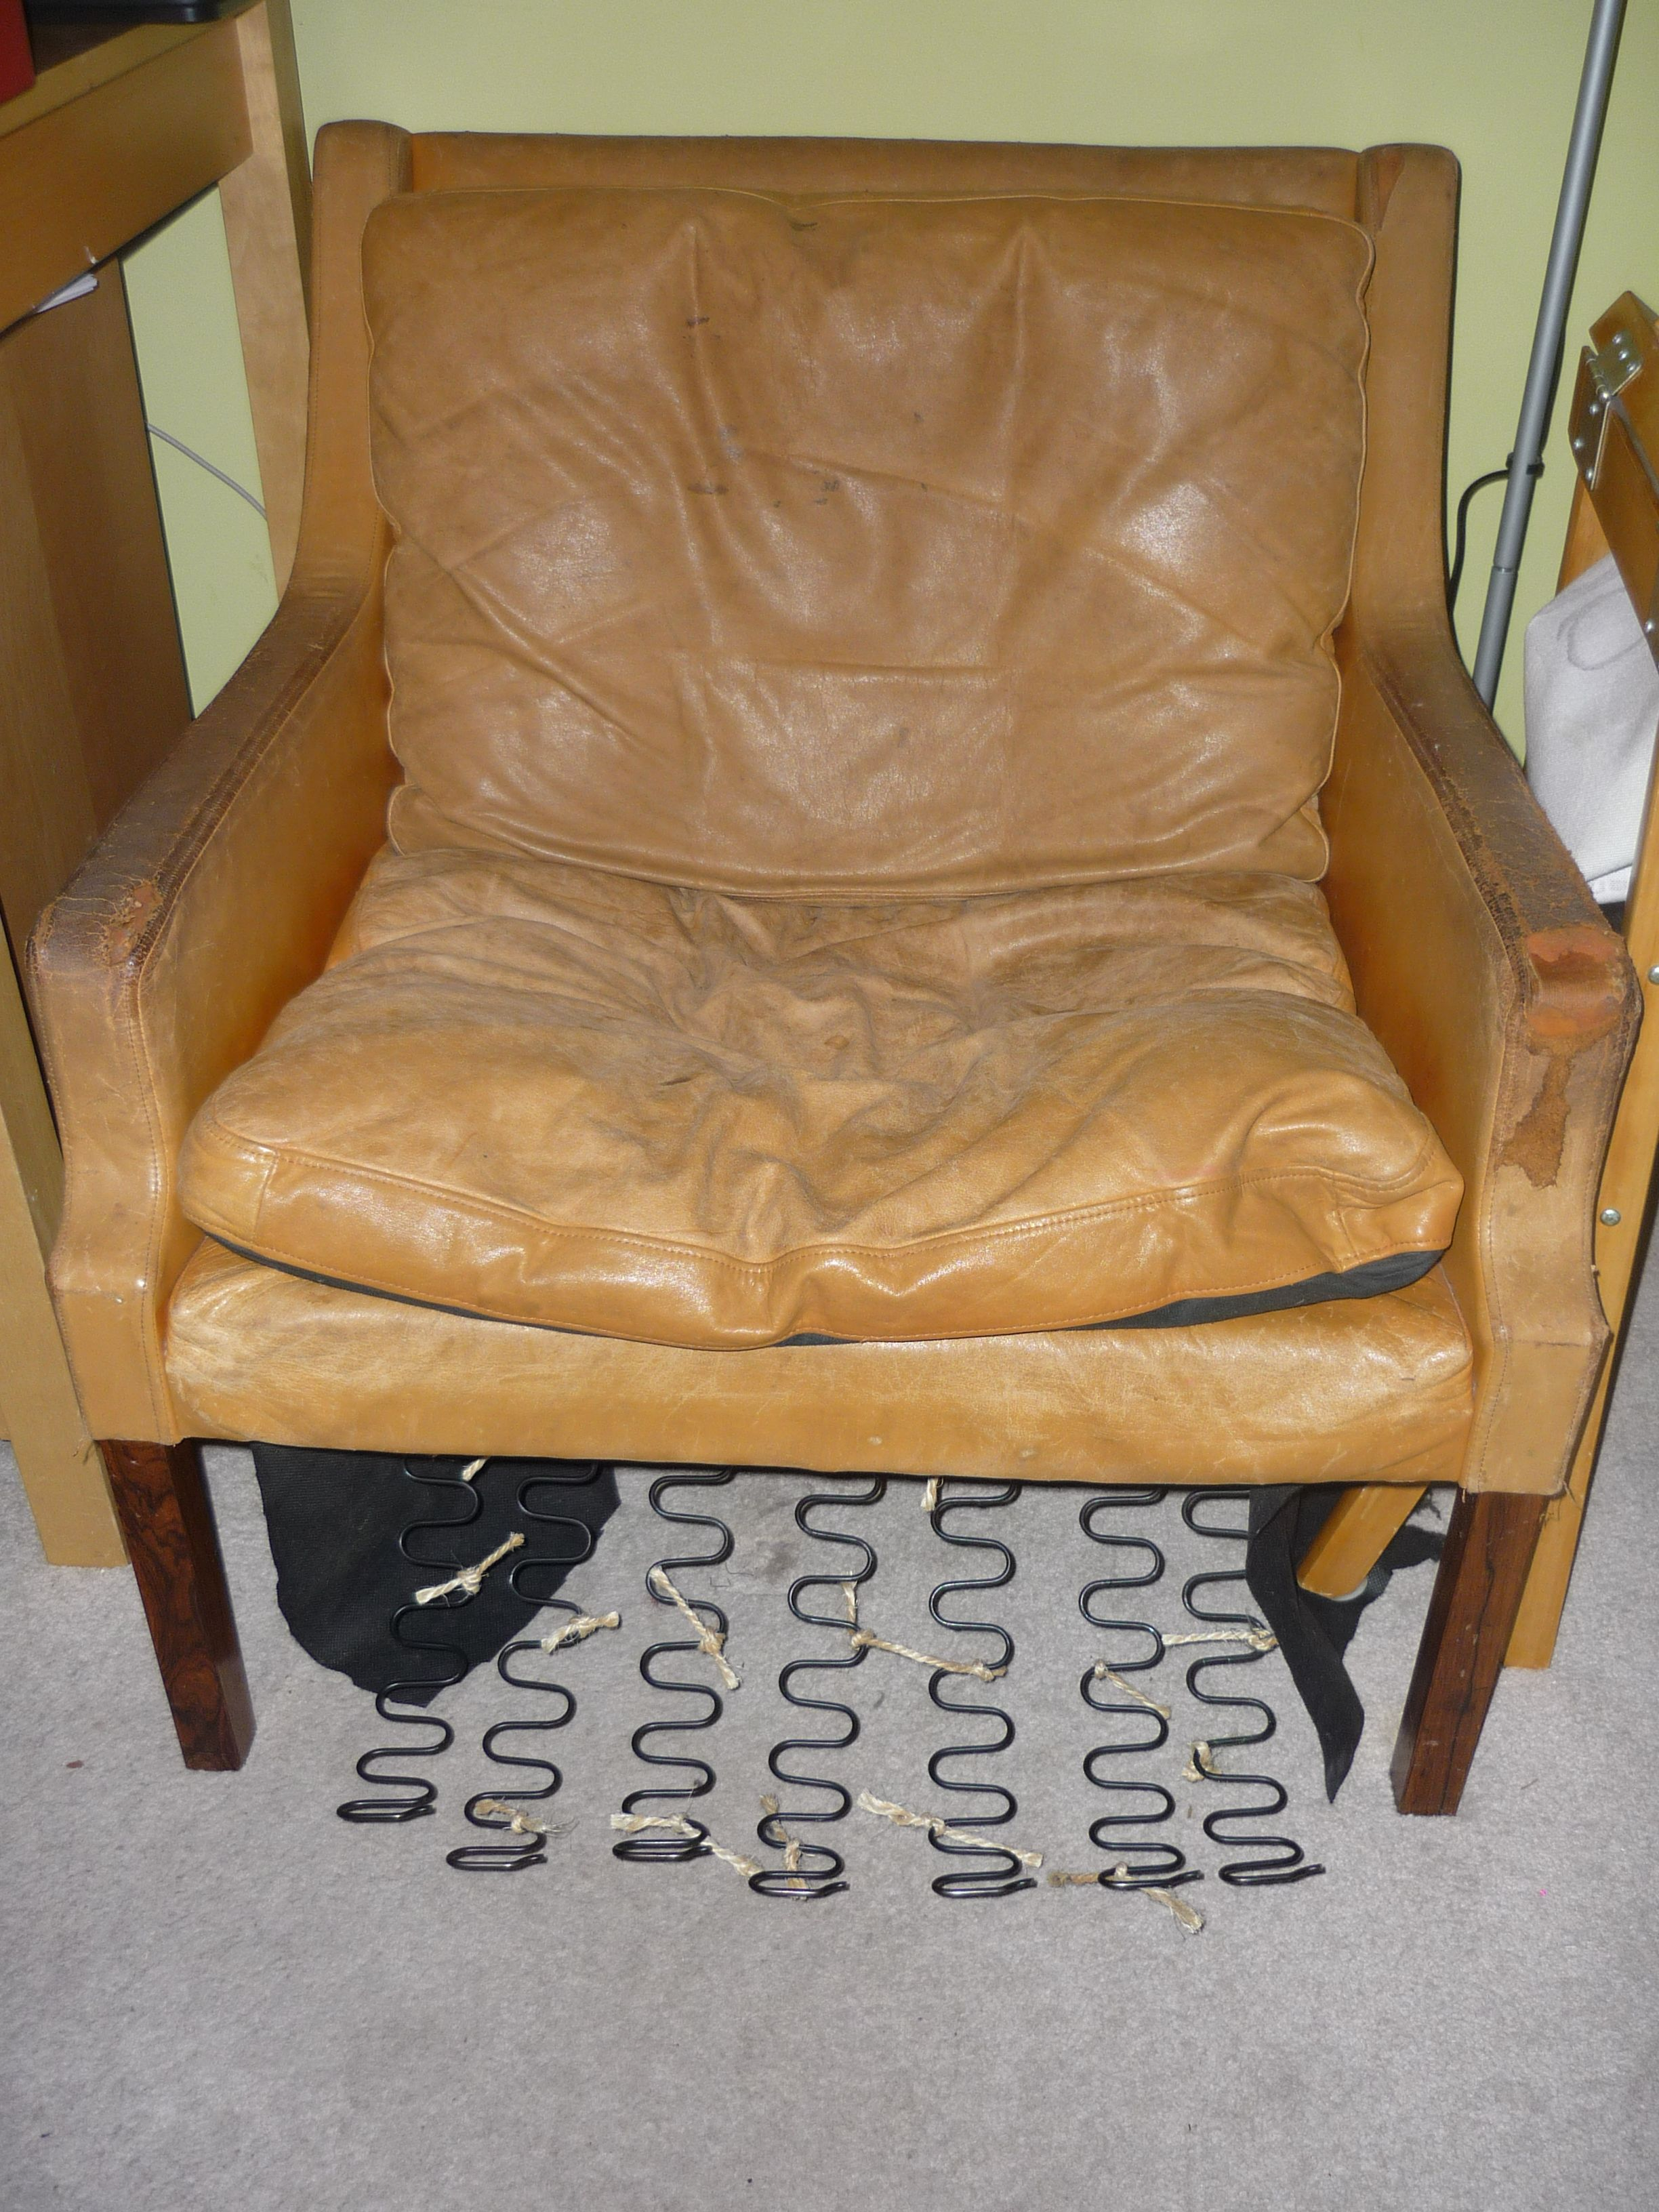 Superieur Danish Rud Thygesen Chair   Before. Couldnu0027t Save The Leather, Really Big  Holes Everywhere, Massive Cat Scratching Attacks On The Back, Reluctantly  Started ...